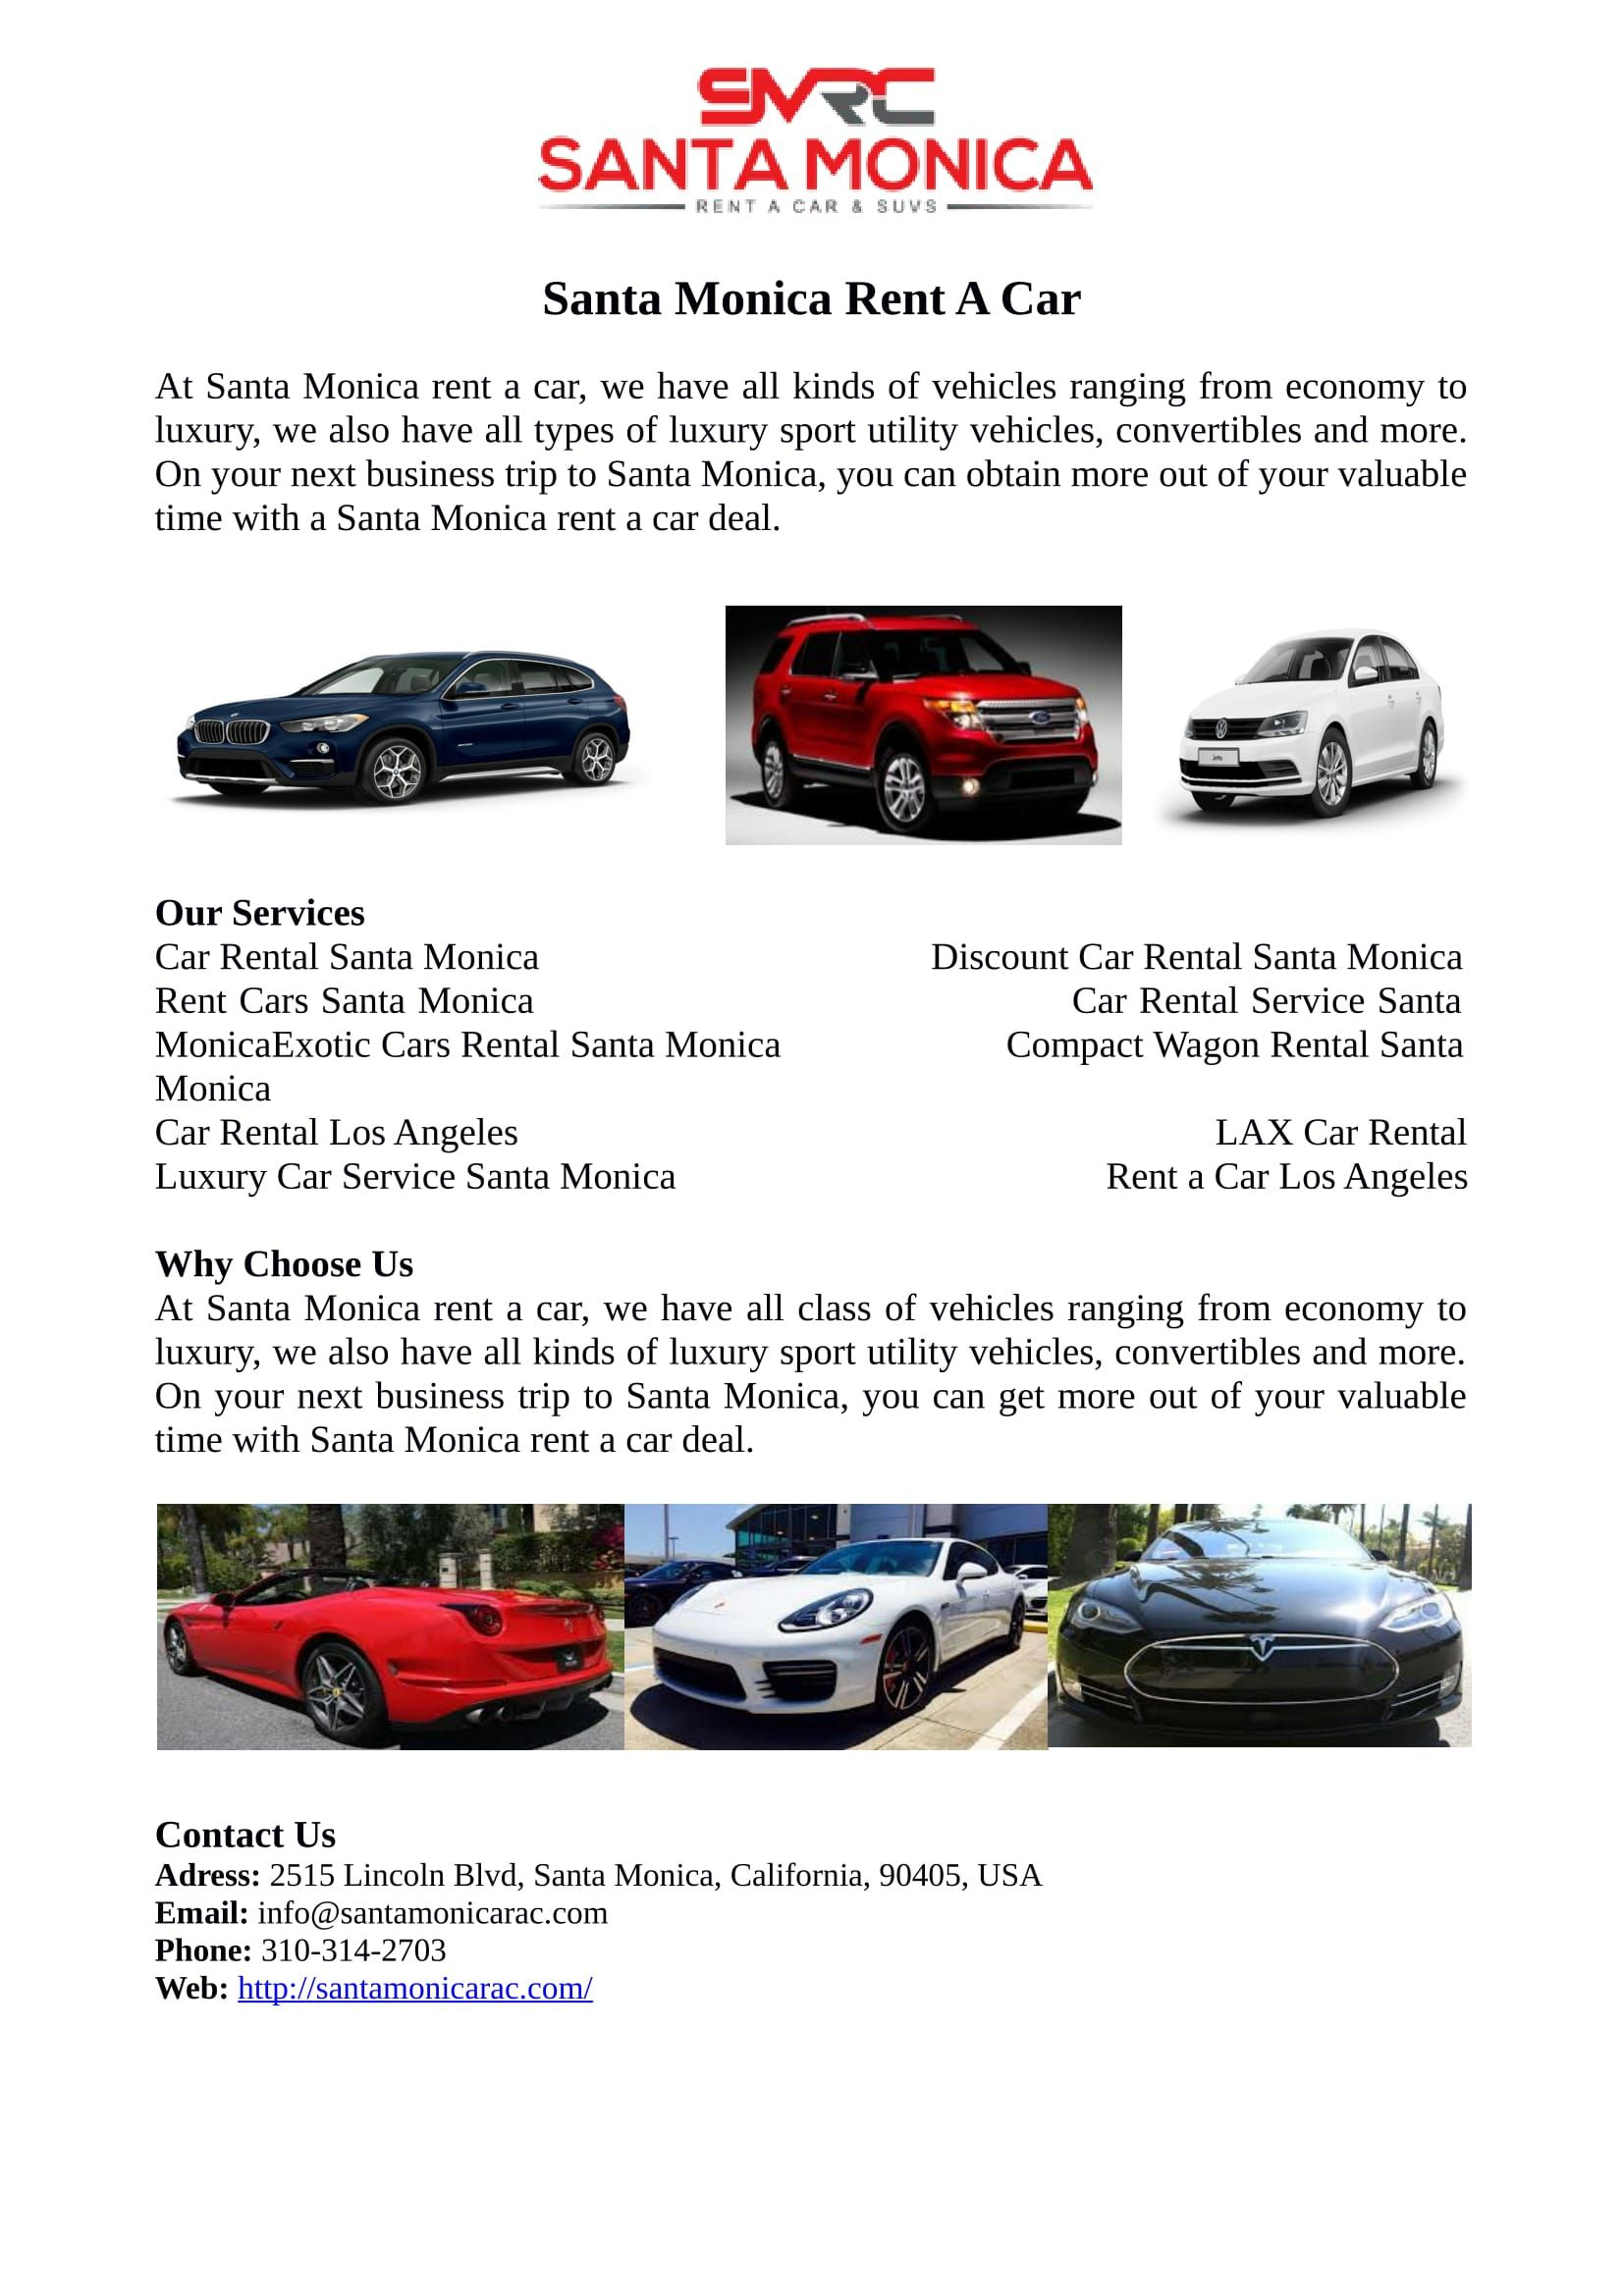 At Santa Monica rent a car we have all kinds of vehicles ranging